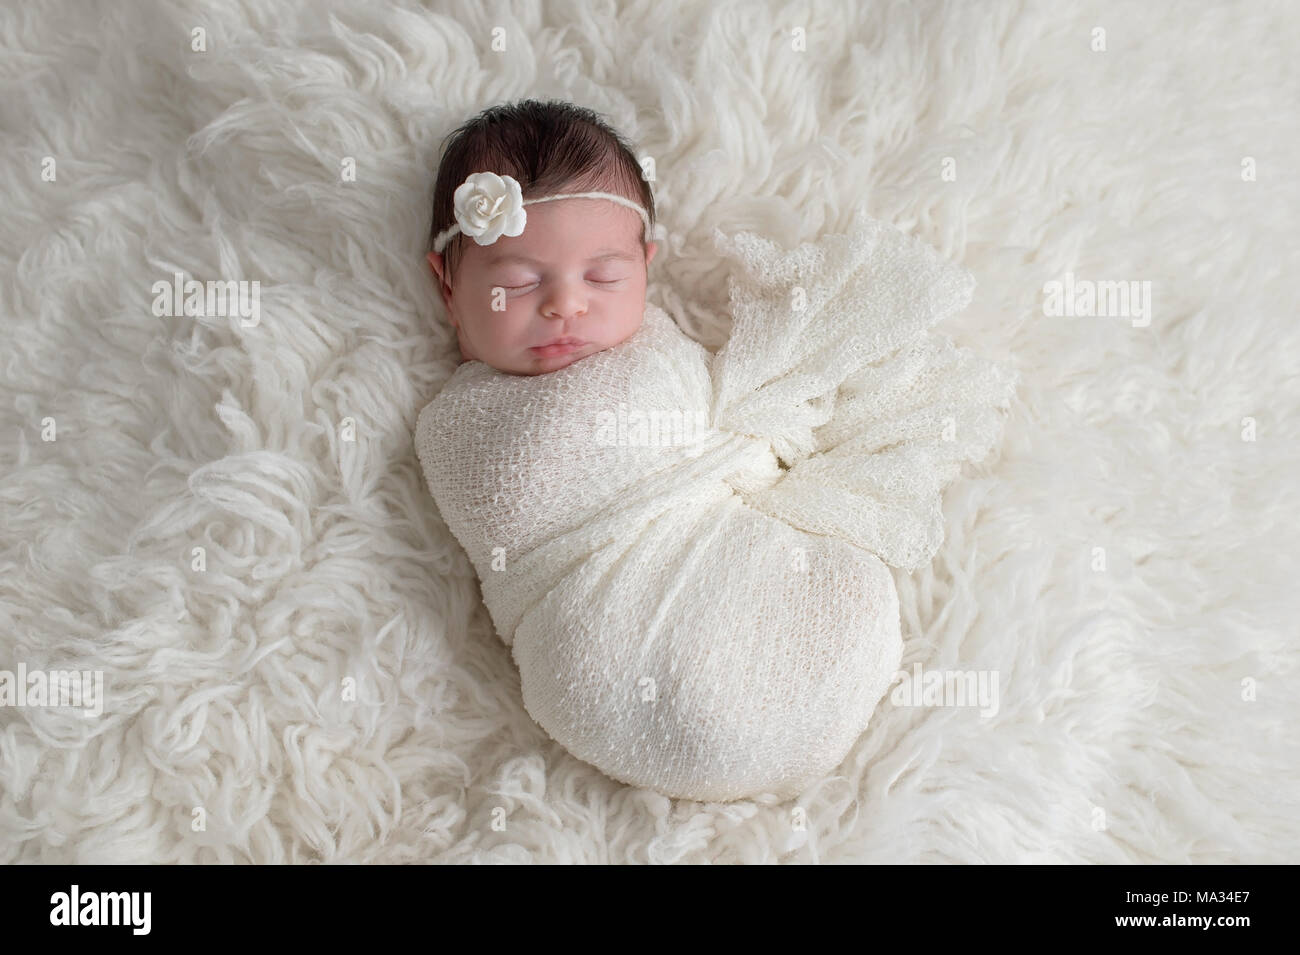 Sleeping Ten Day Old Newborn Baby Girl Swaddled In A